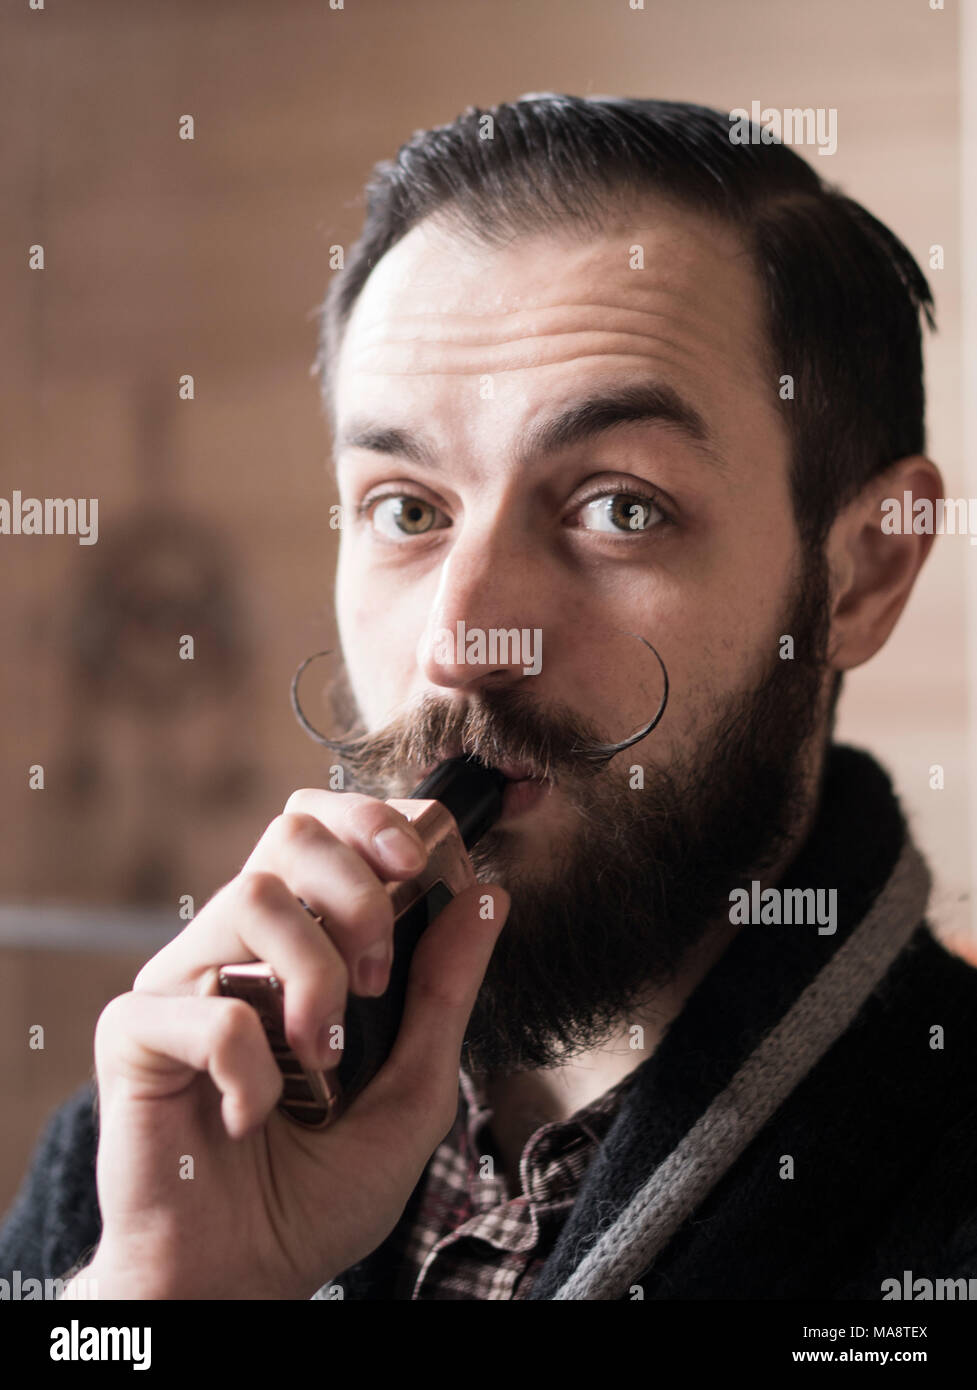 Man with Beard and Mustages Vaping an Electronic Cigarette. Vaper Hipster Smoke Vaporizer in the Room. - Stock Image